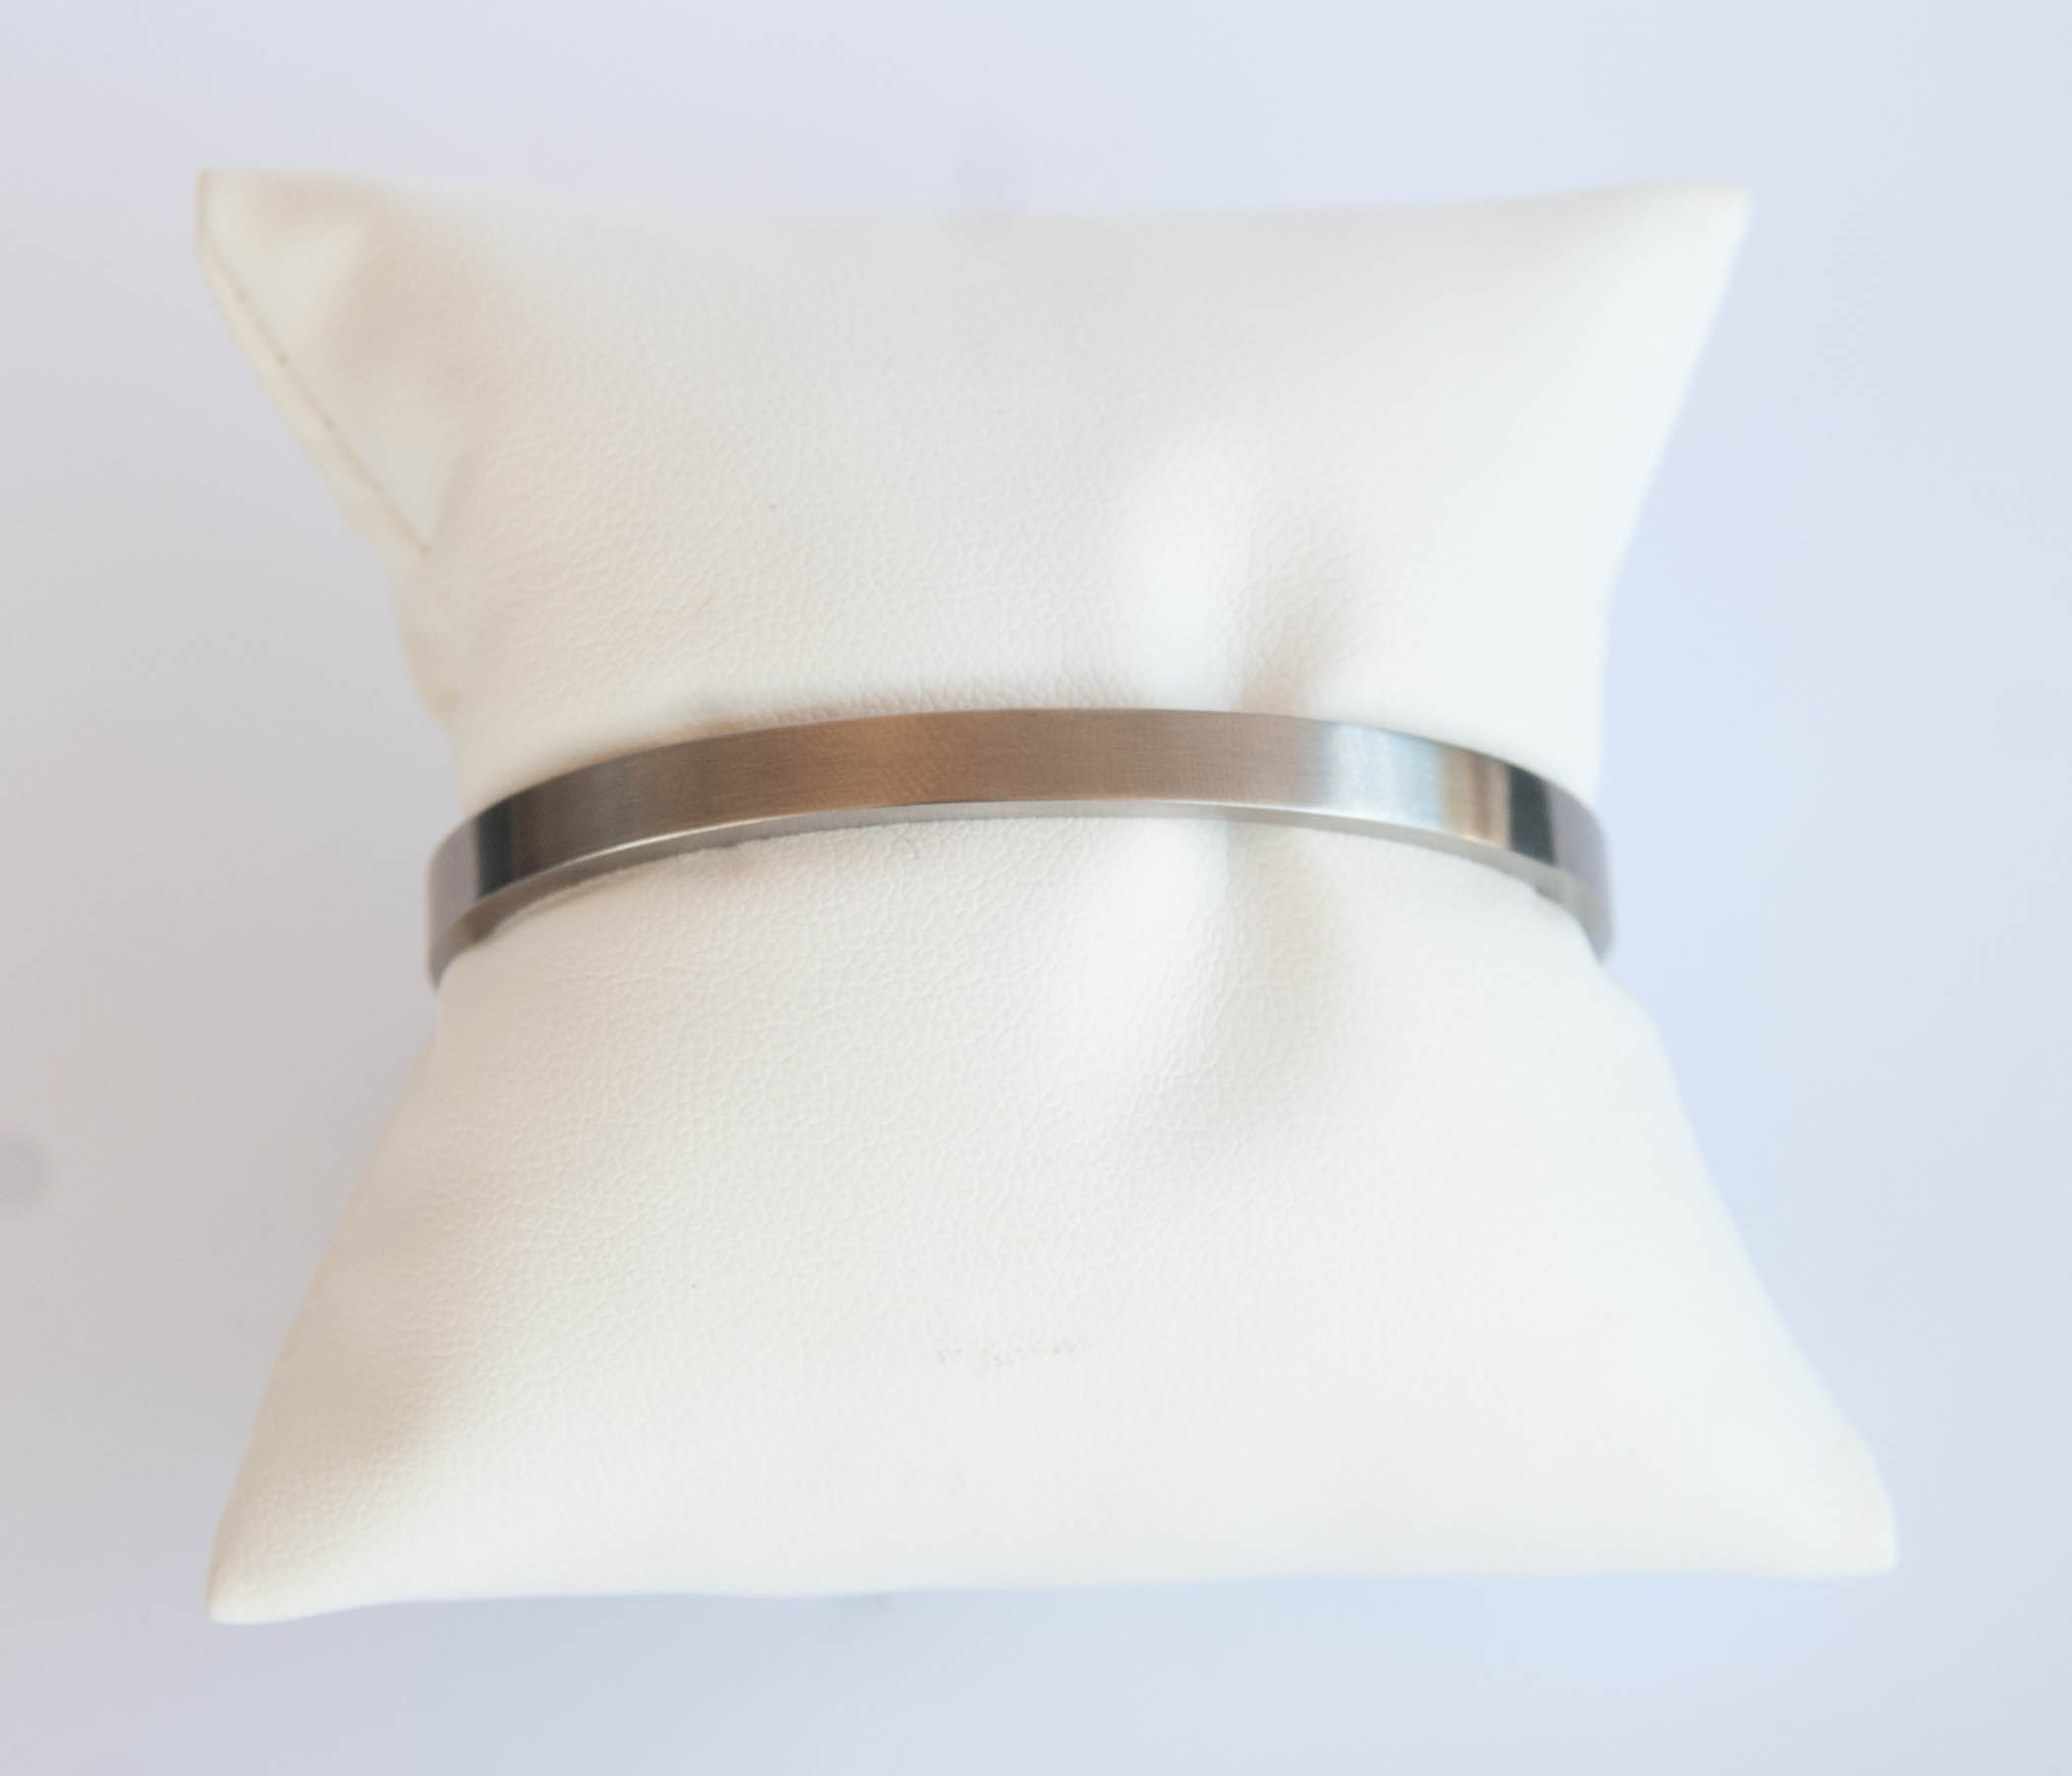 750-2   Stainless Steel Silver Finish Hinged Bangle $45.00